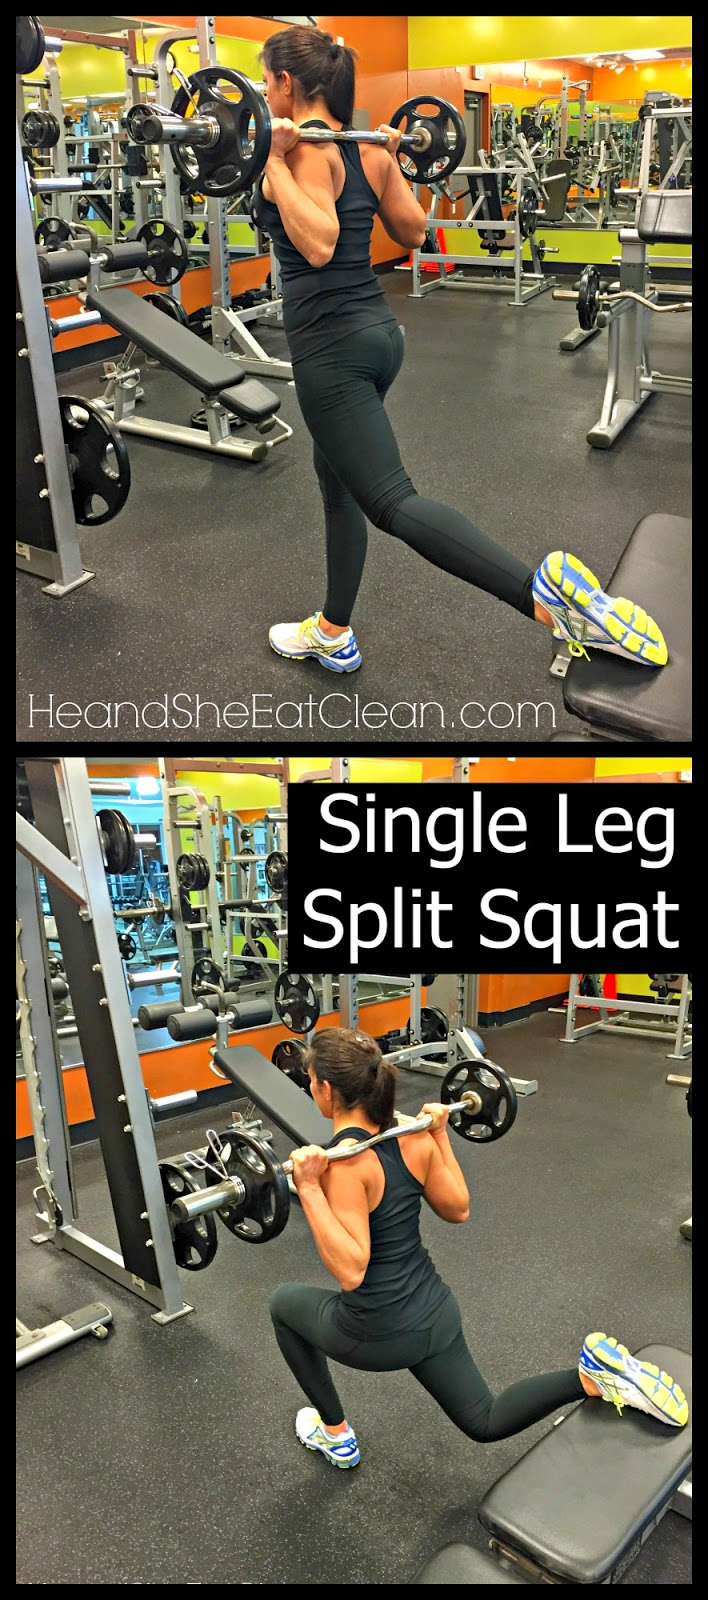 single-leg-split-squat-workout-fitness-lift-weights-he-and-she-eat-clean-she-sweats-workout-plan-fitness-lifestyle-legs-glutes-collage-booty.jpg